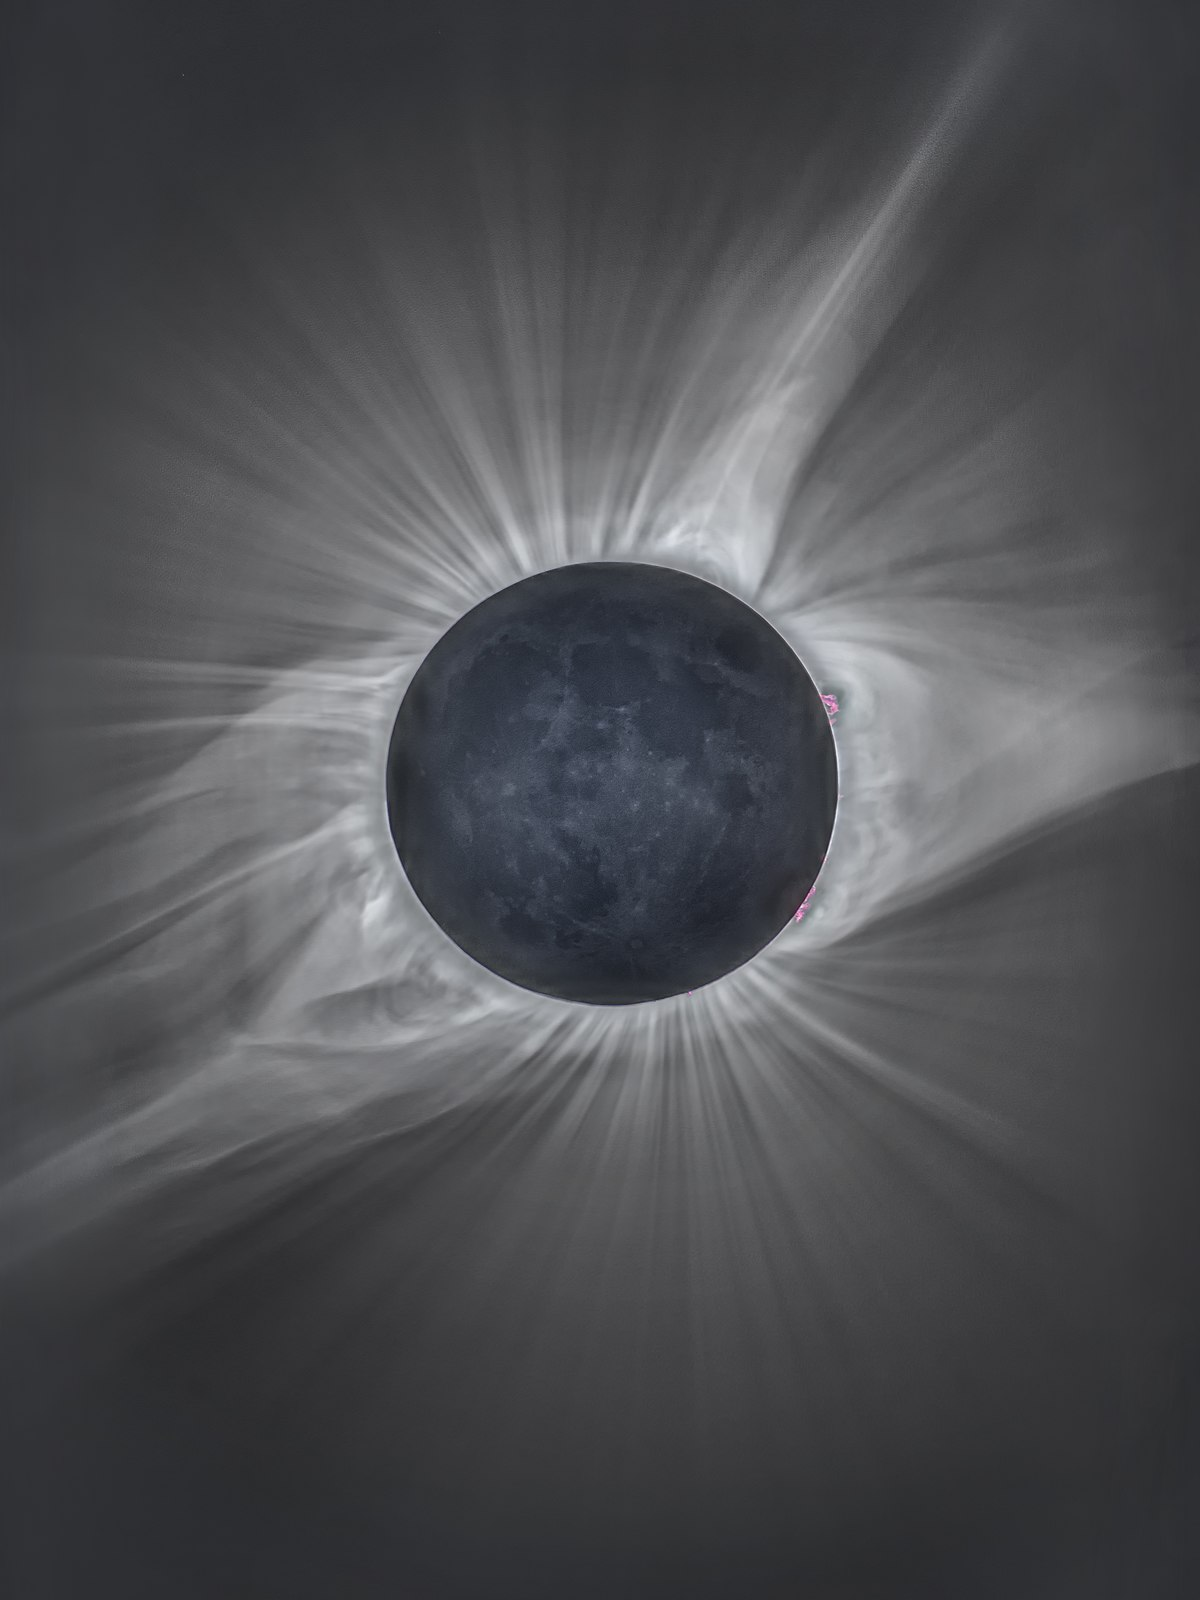 Solar eclipse of August 21, 2017 - Wikipedia